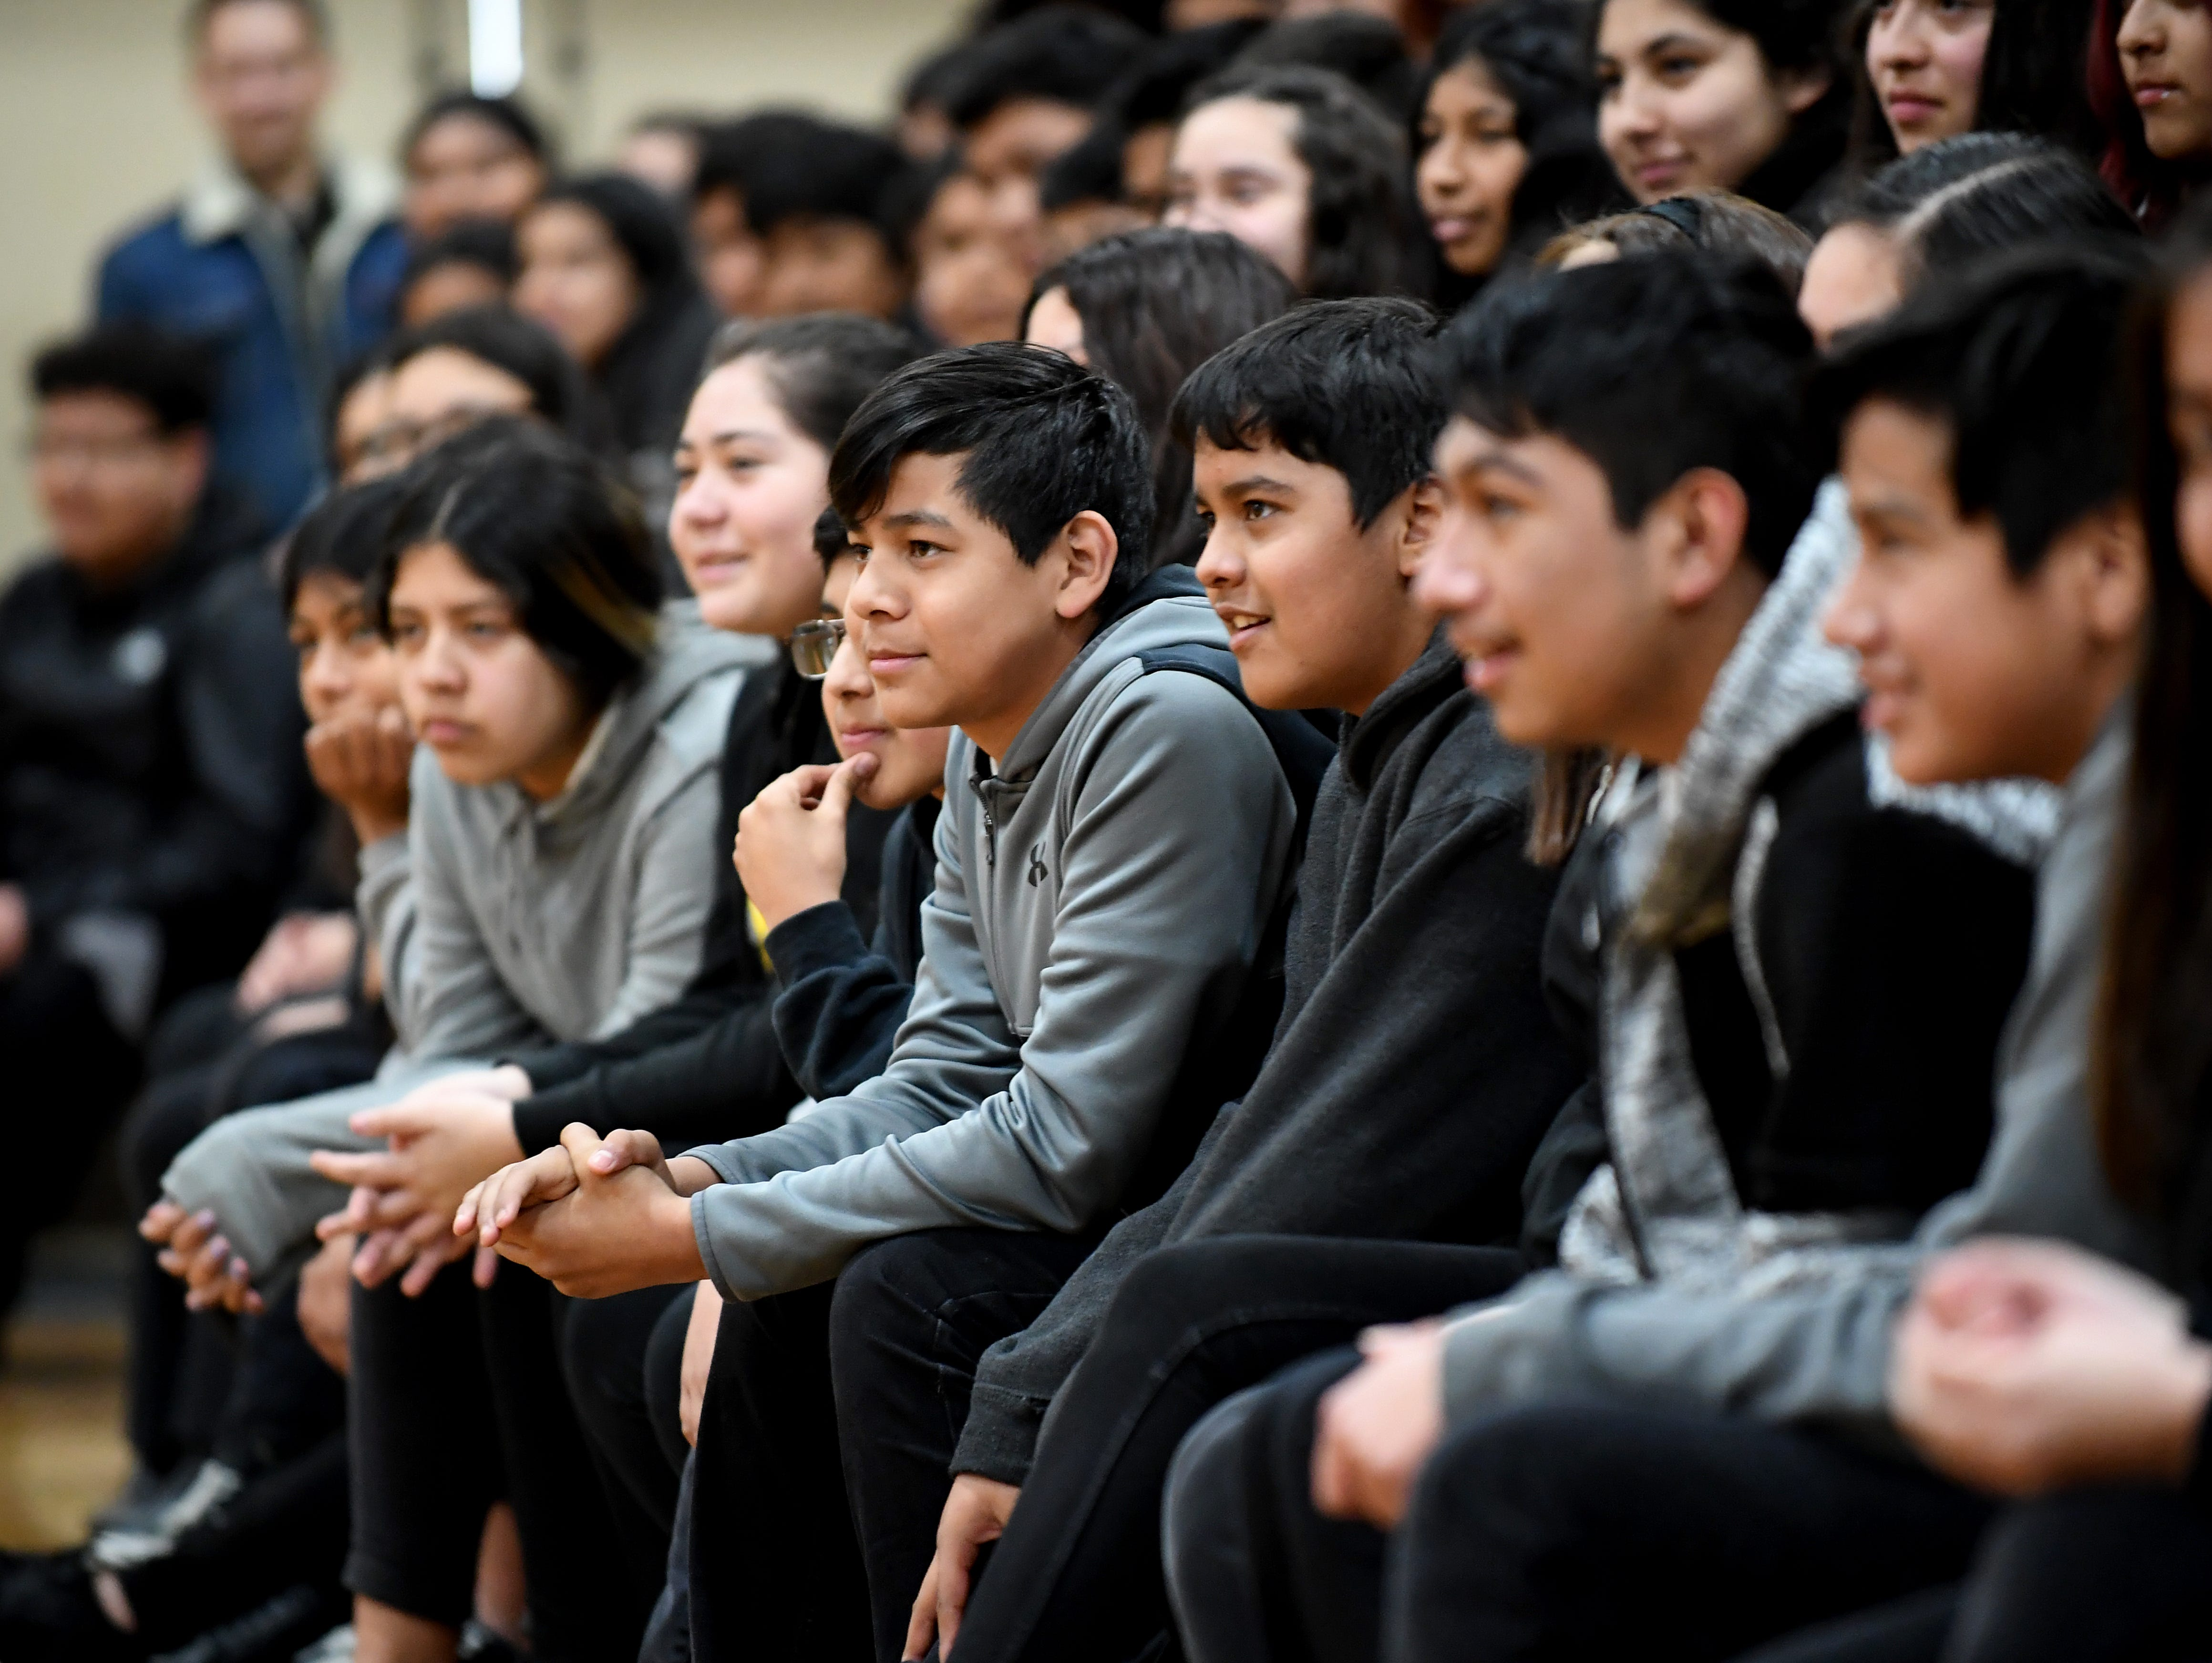 El Sausal Middle School students watch as alum James Thompson performs for them during a special visit Feb. 21, 2019.